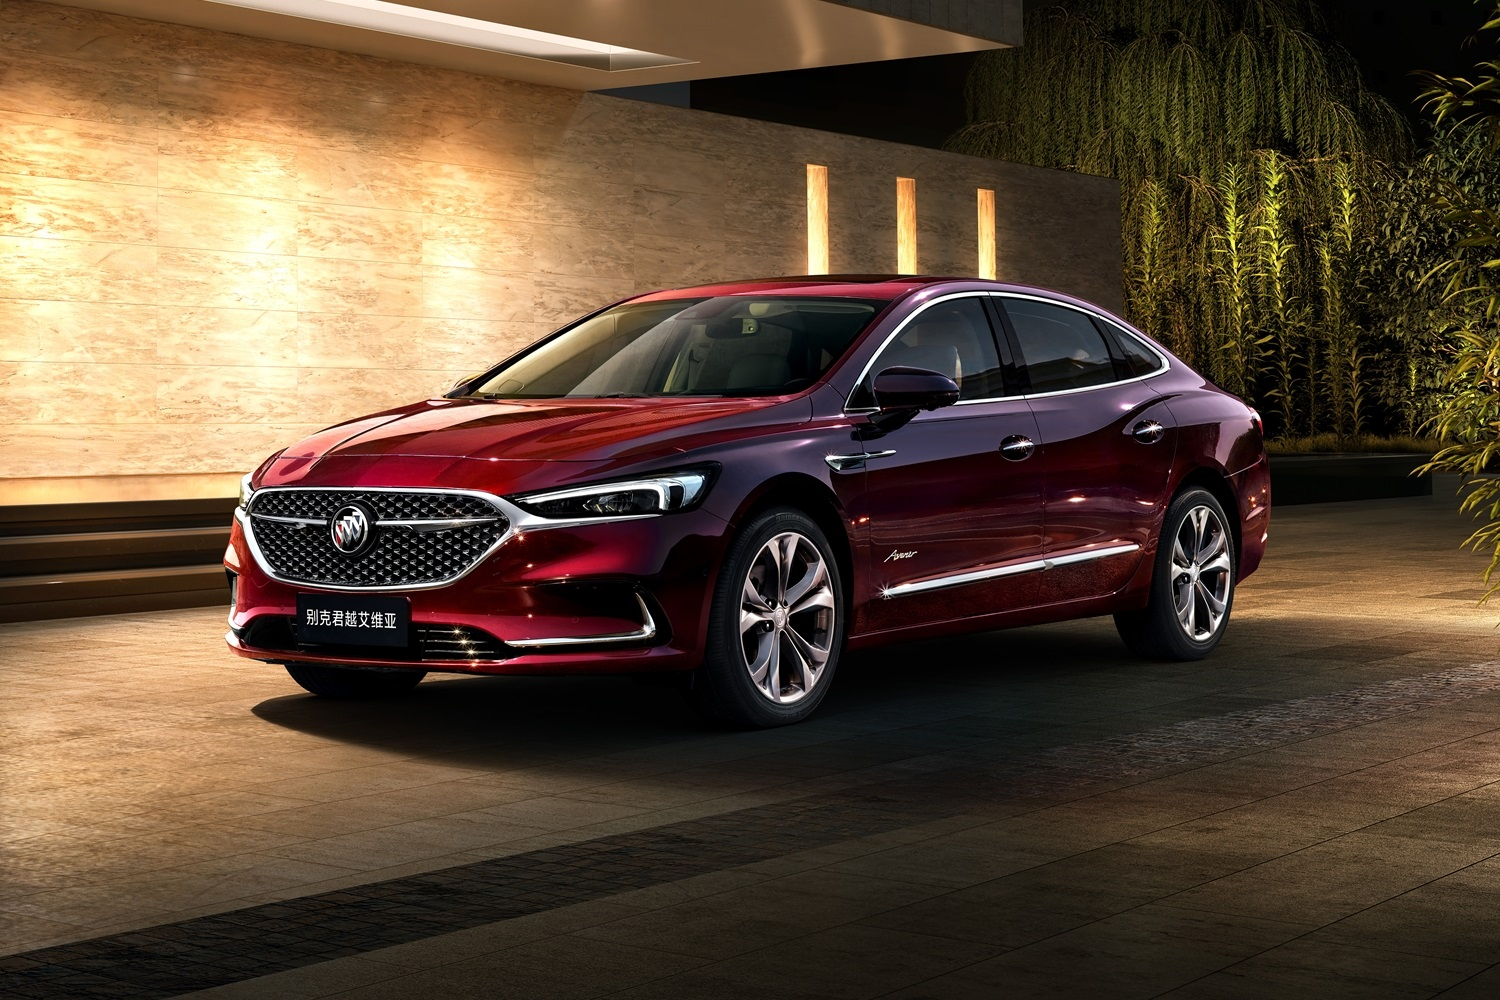 2021 Buick Lacrosse Gets More Refined Than Ever | Gm Authority 2021 Buick Verano Recalls, Specs, Oil Type